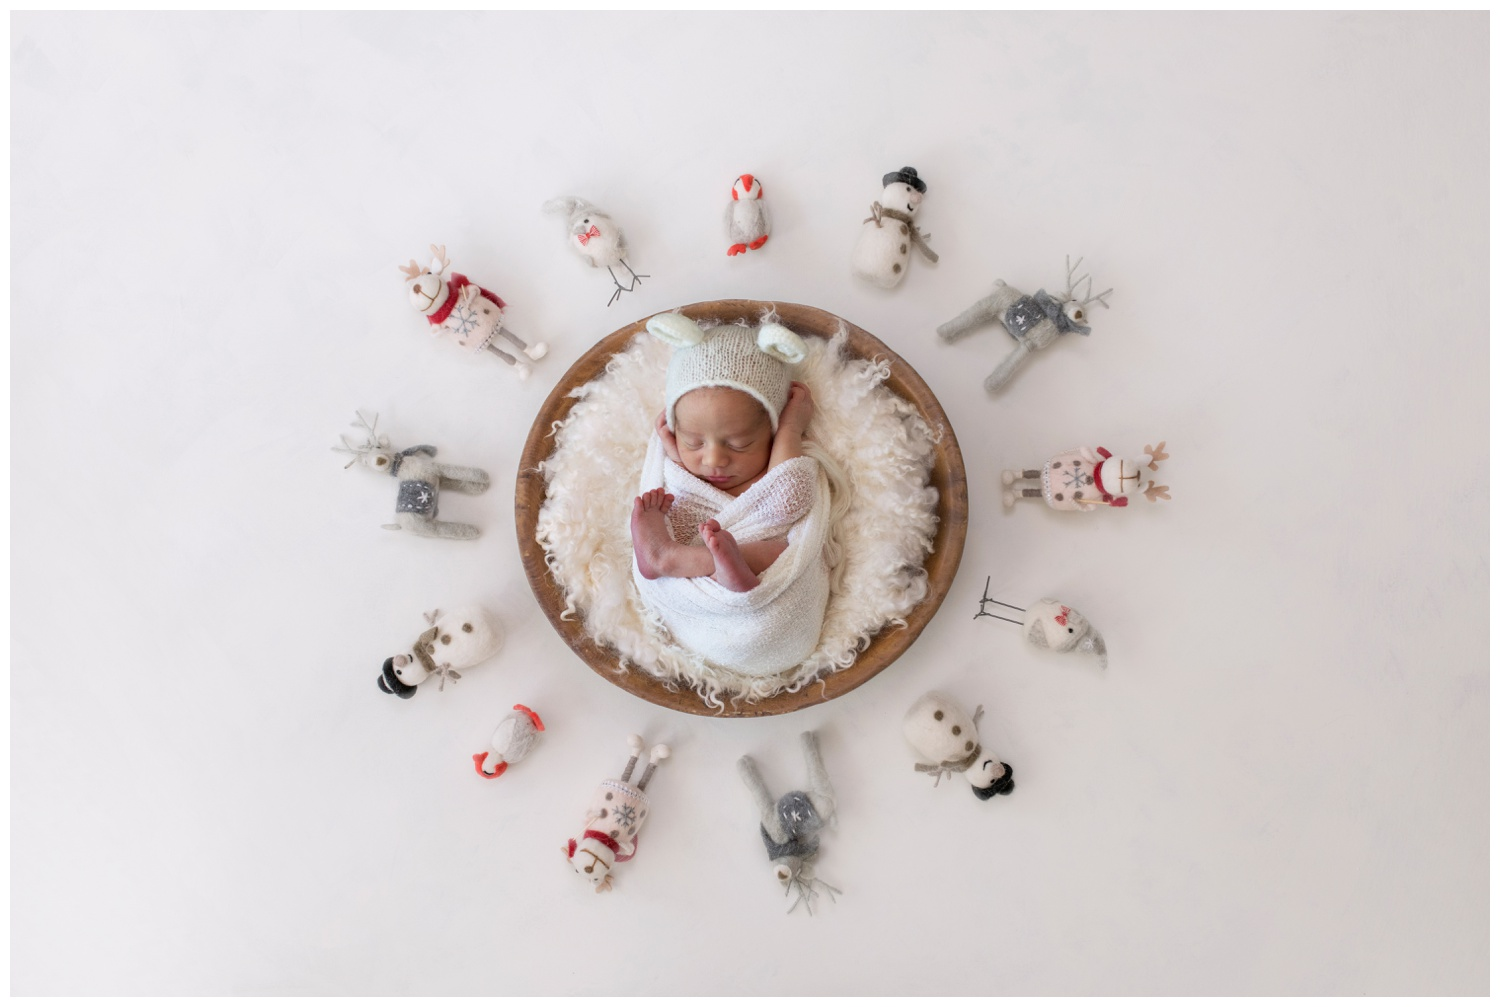 newborn august composite snowman kristi Gayton photography